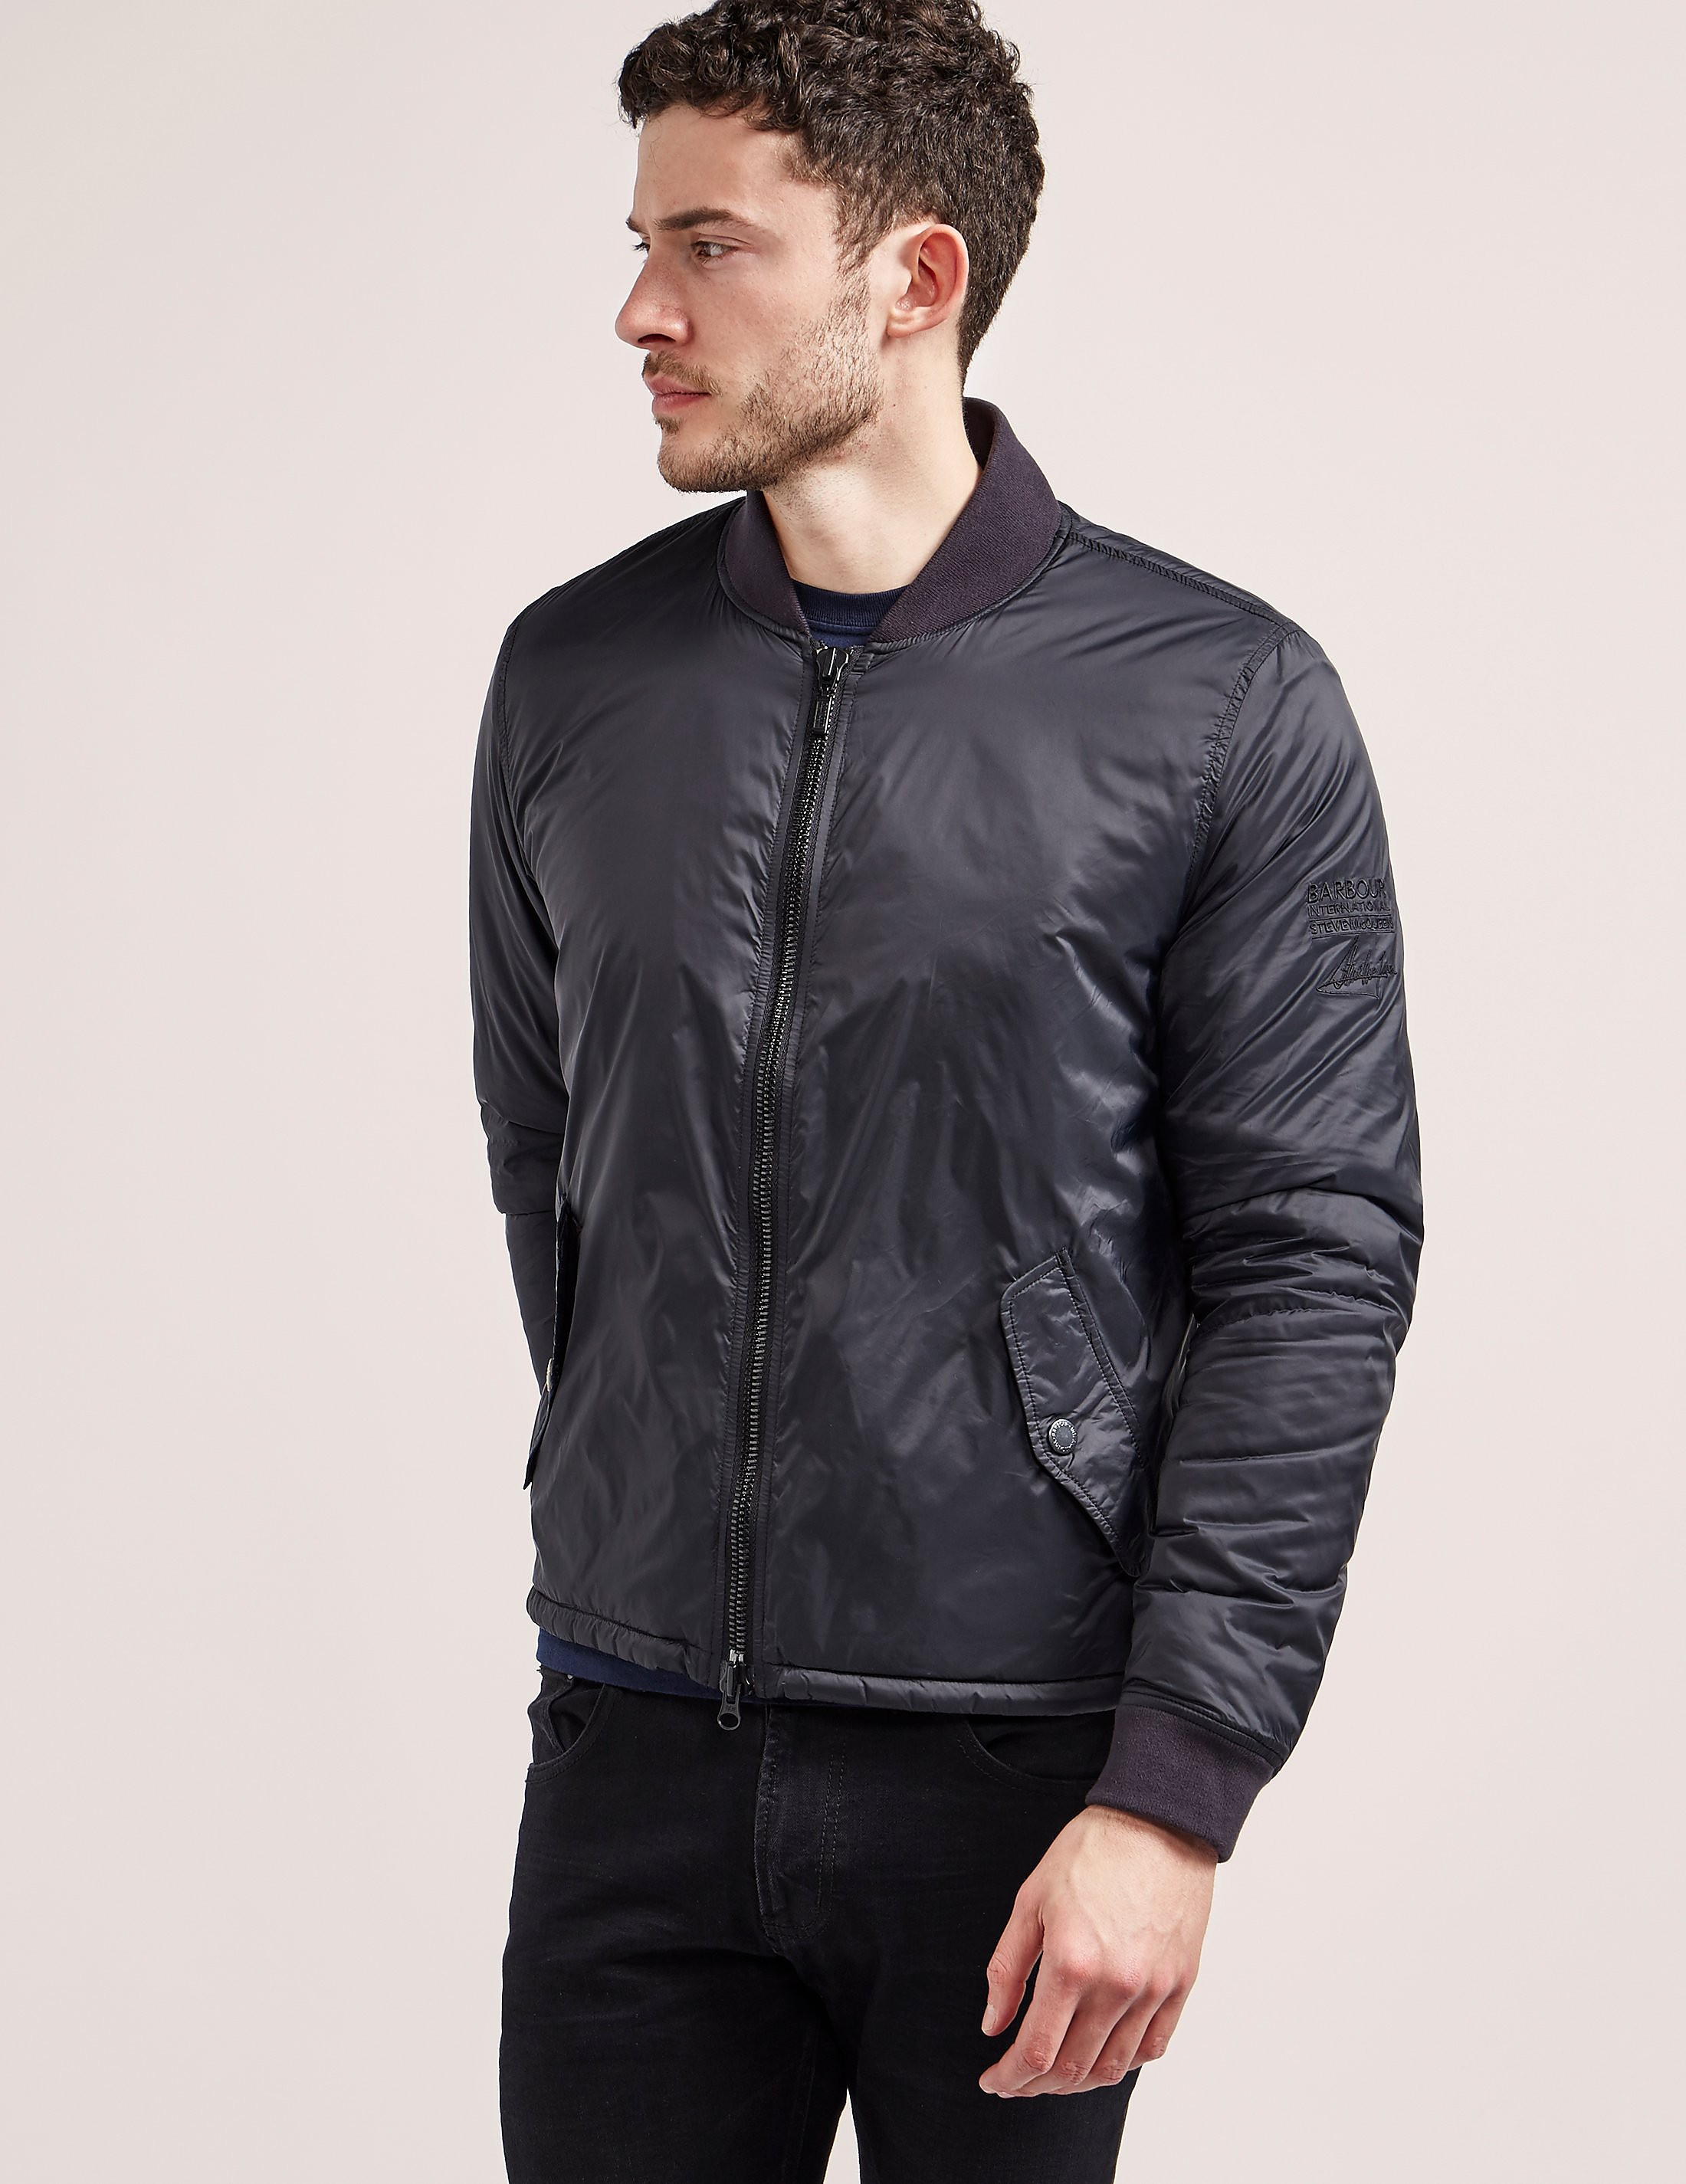 Barbour International Steve Mc Queen Bomber